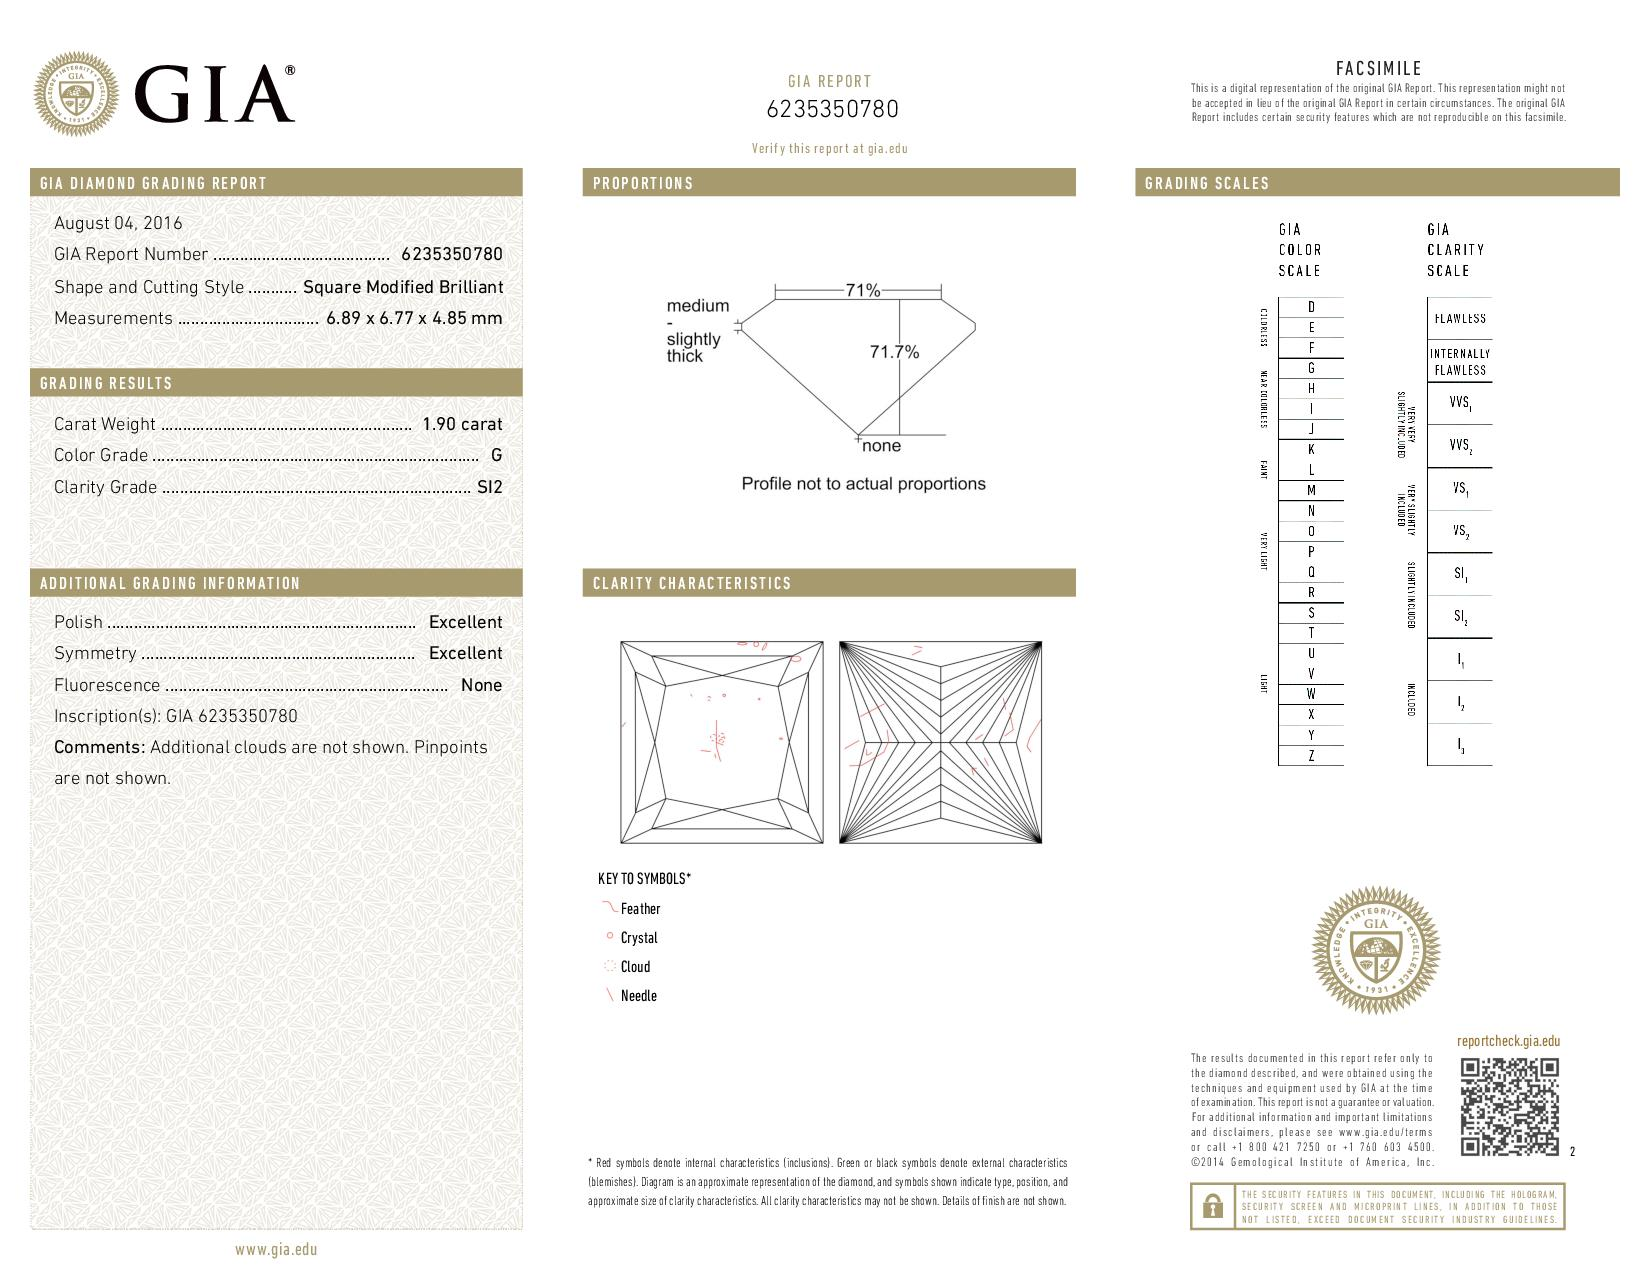 This is a 1.90 carat princess shape, G color, SI2 clarity natural diamond accompanied by a GIA grading report.